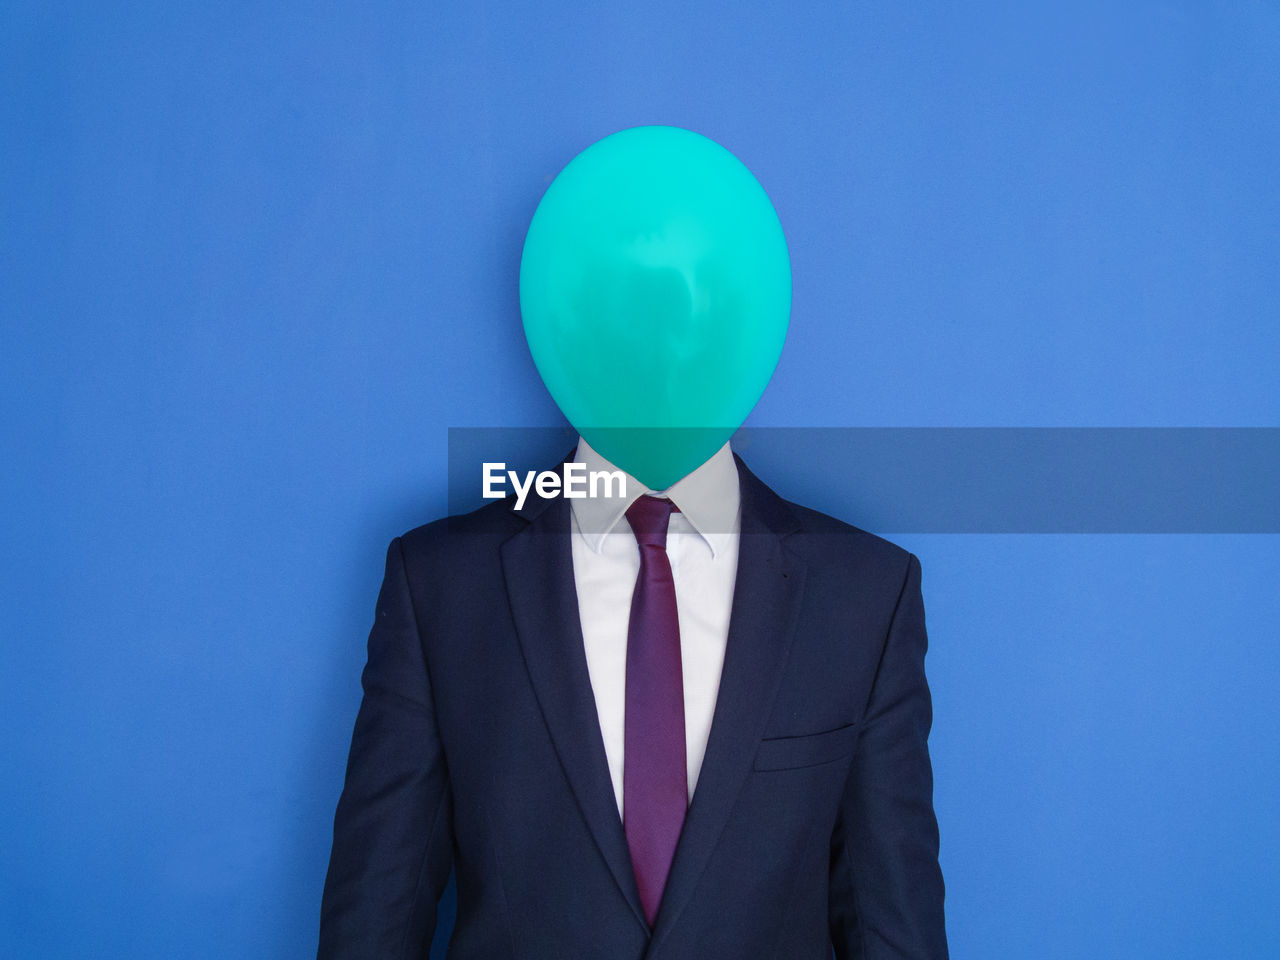 Face of businessman covered with balloon standing against blue background